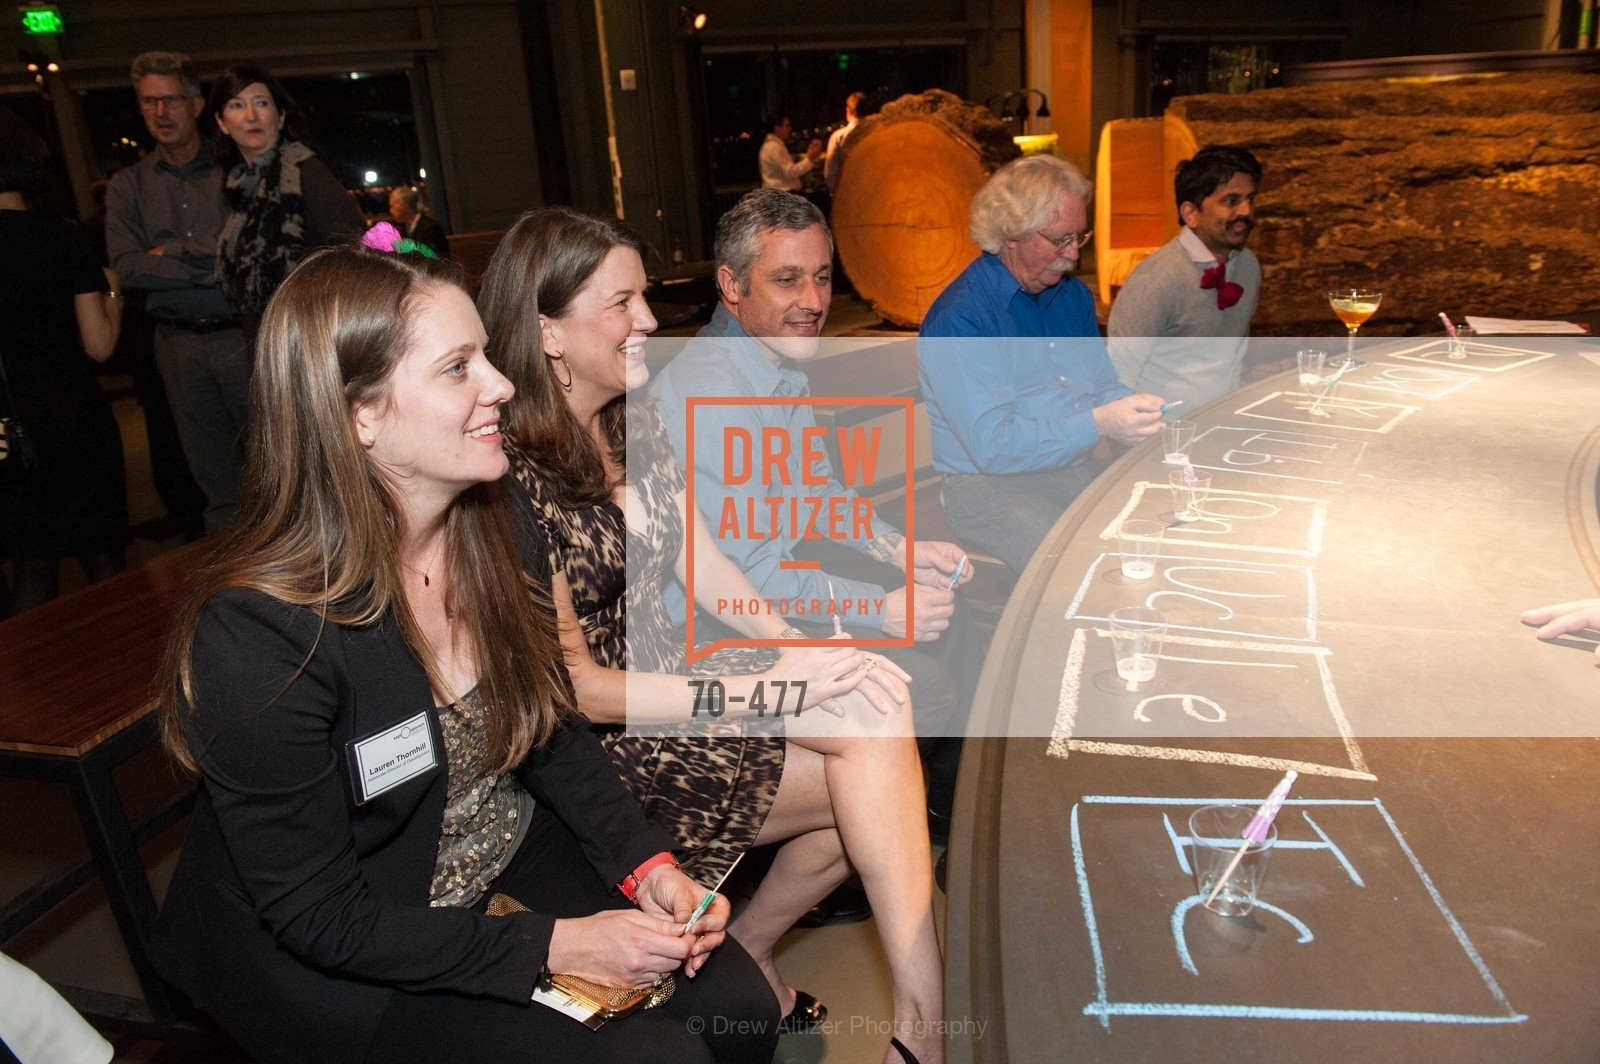 Lauren Thornill, Melina Thornhill, Eric Stahl, THE EXPLORATORIUM LAB Presents 2014 Science of Cocktails, US. US, January 24th, 2014,Drew Altizer, Drew Altizer Photography, full-service agency, private events, San Francisco photographer, photographer california